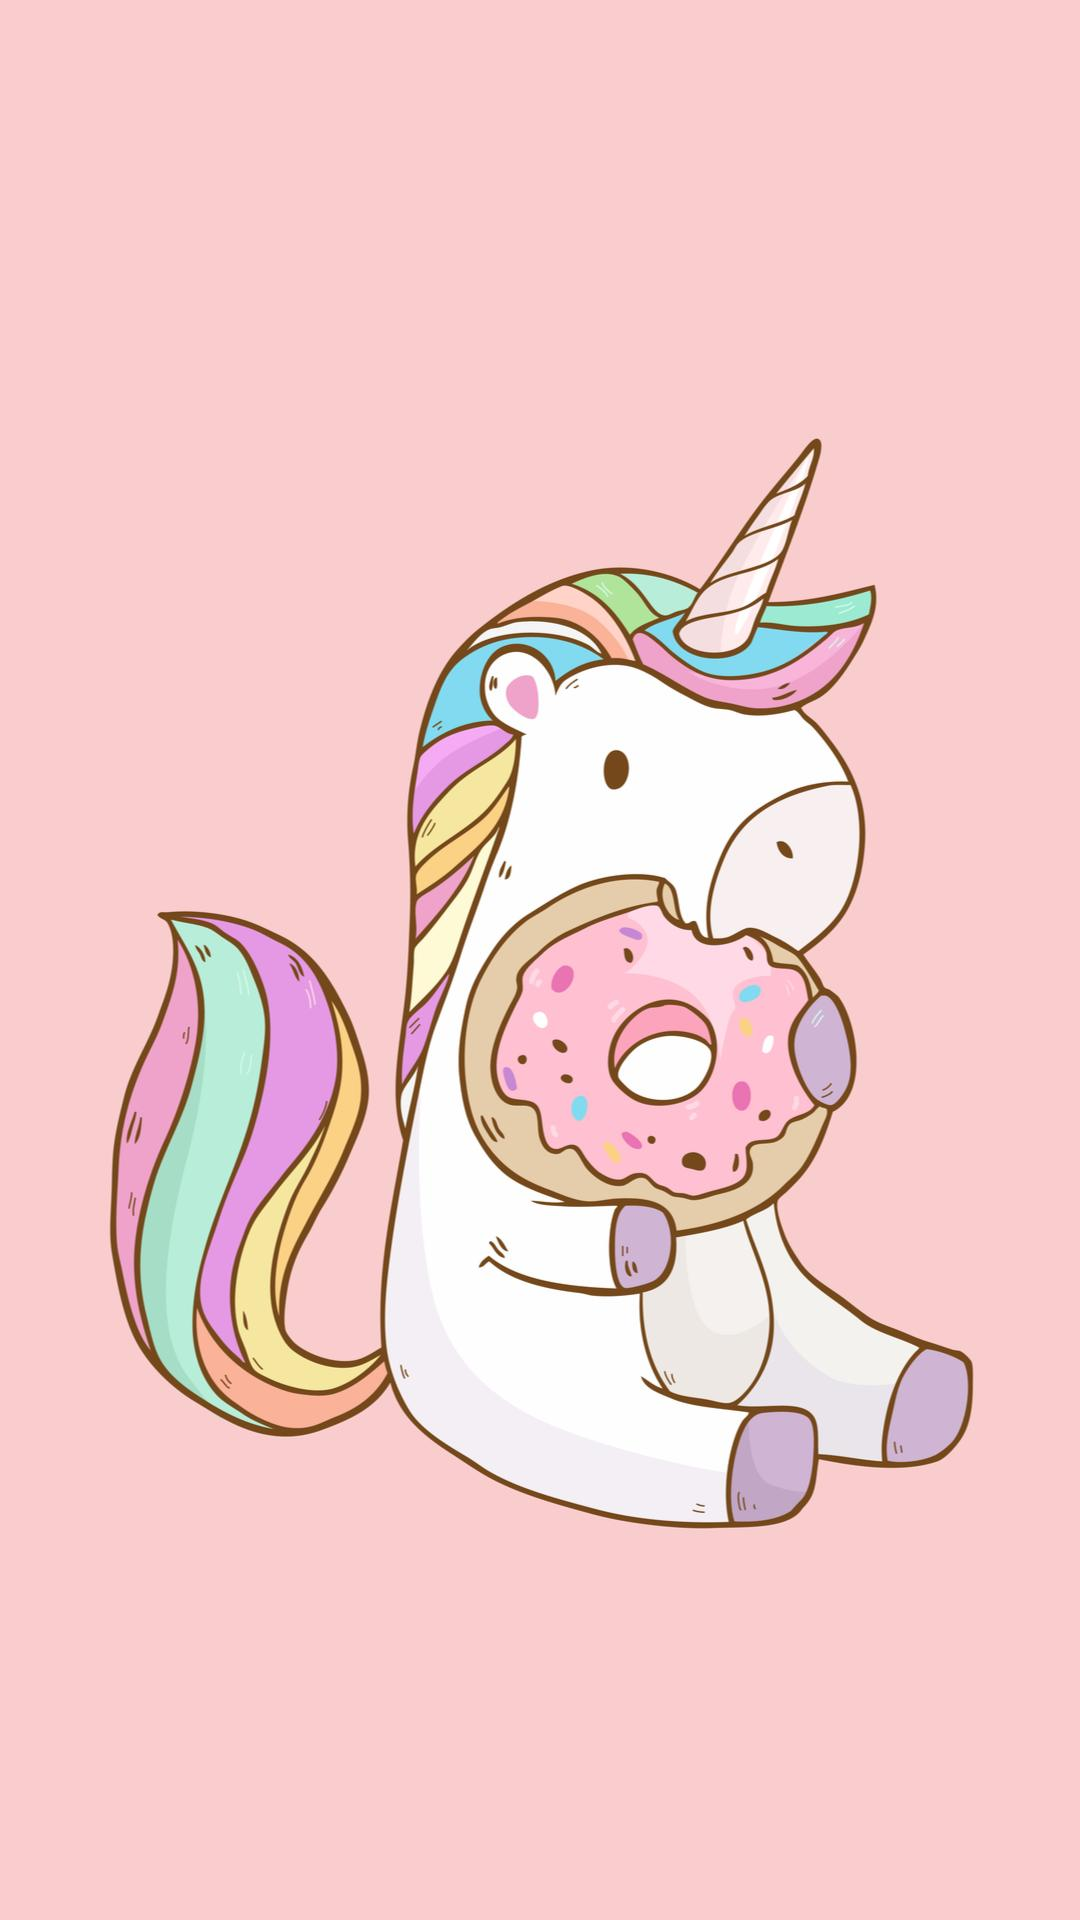 Unicorn Wallpaper Cute Posted By Samantha Sellers